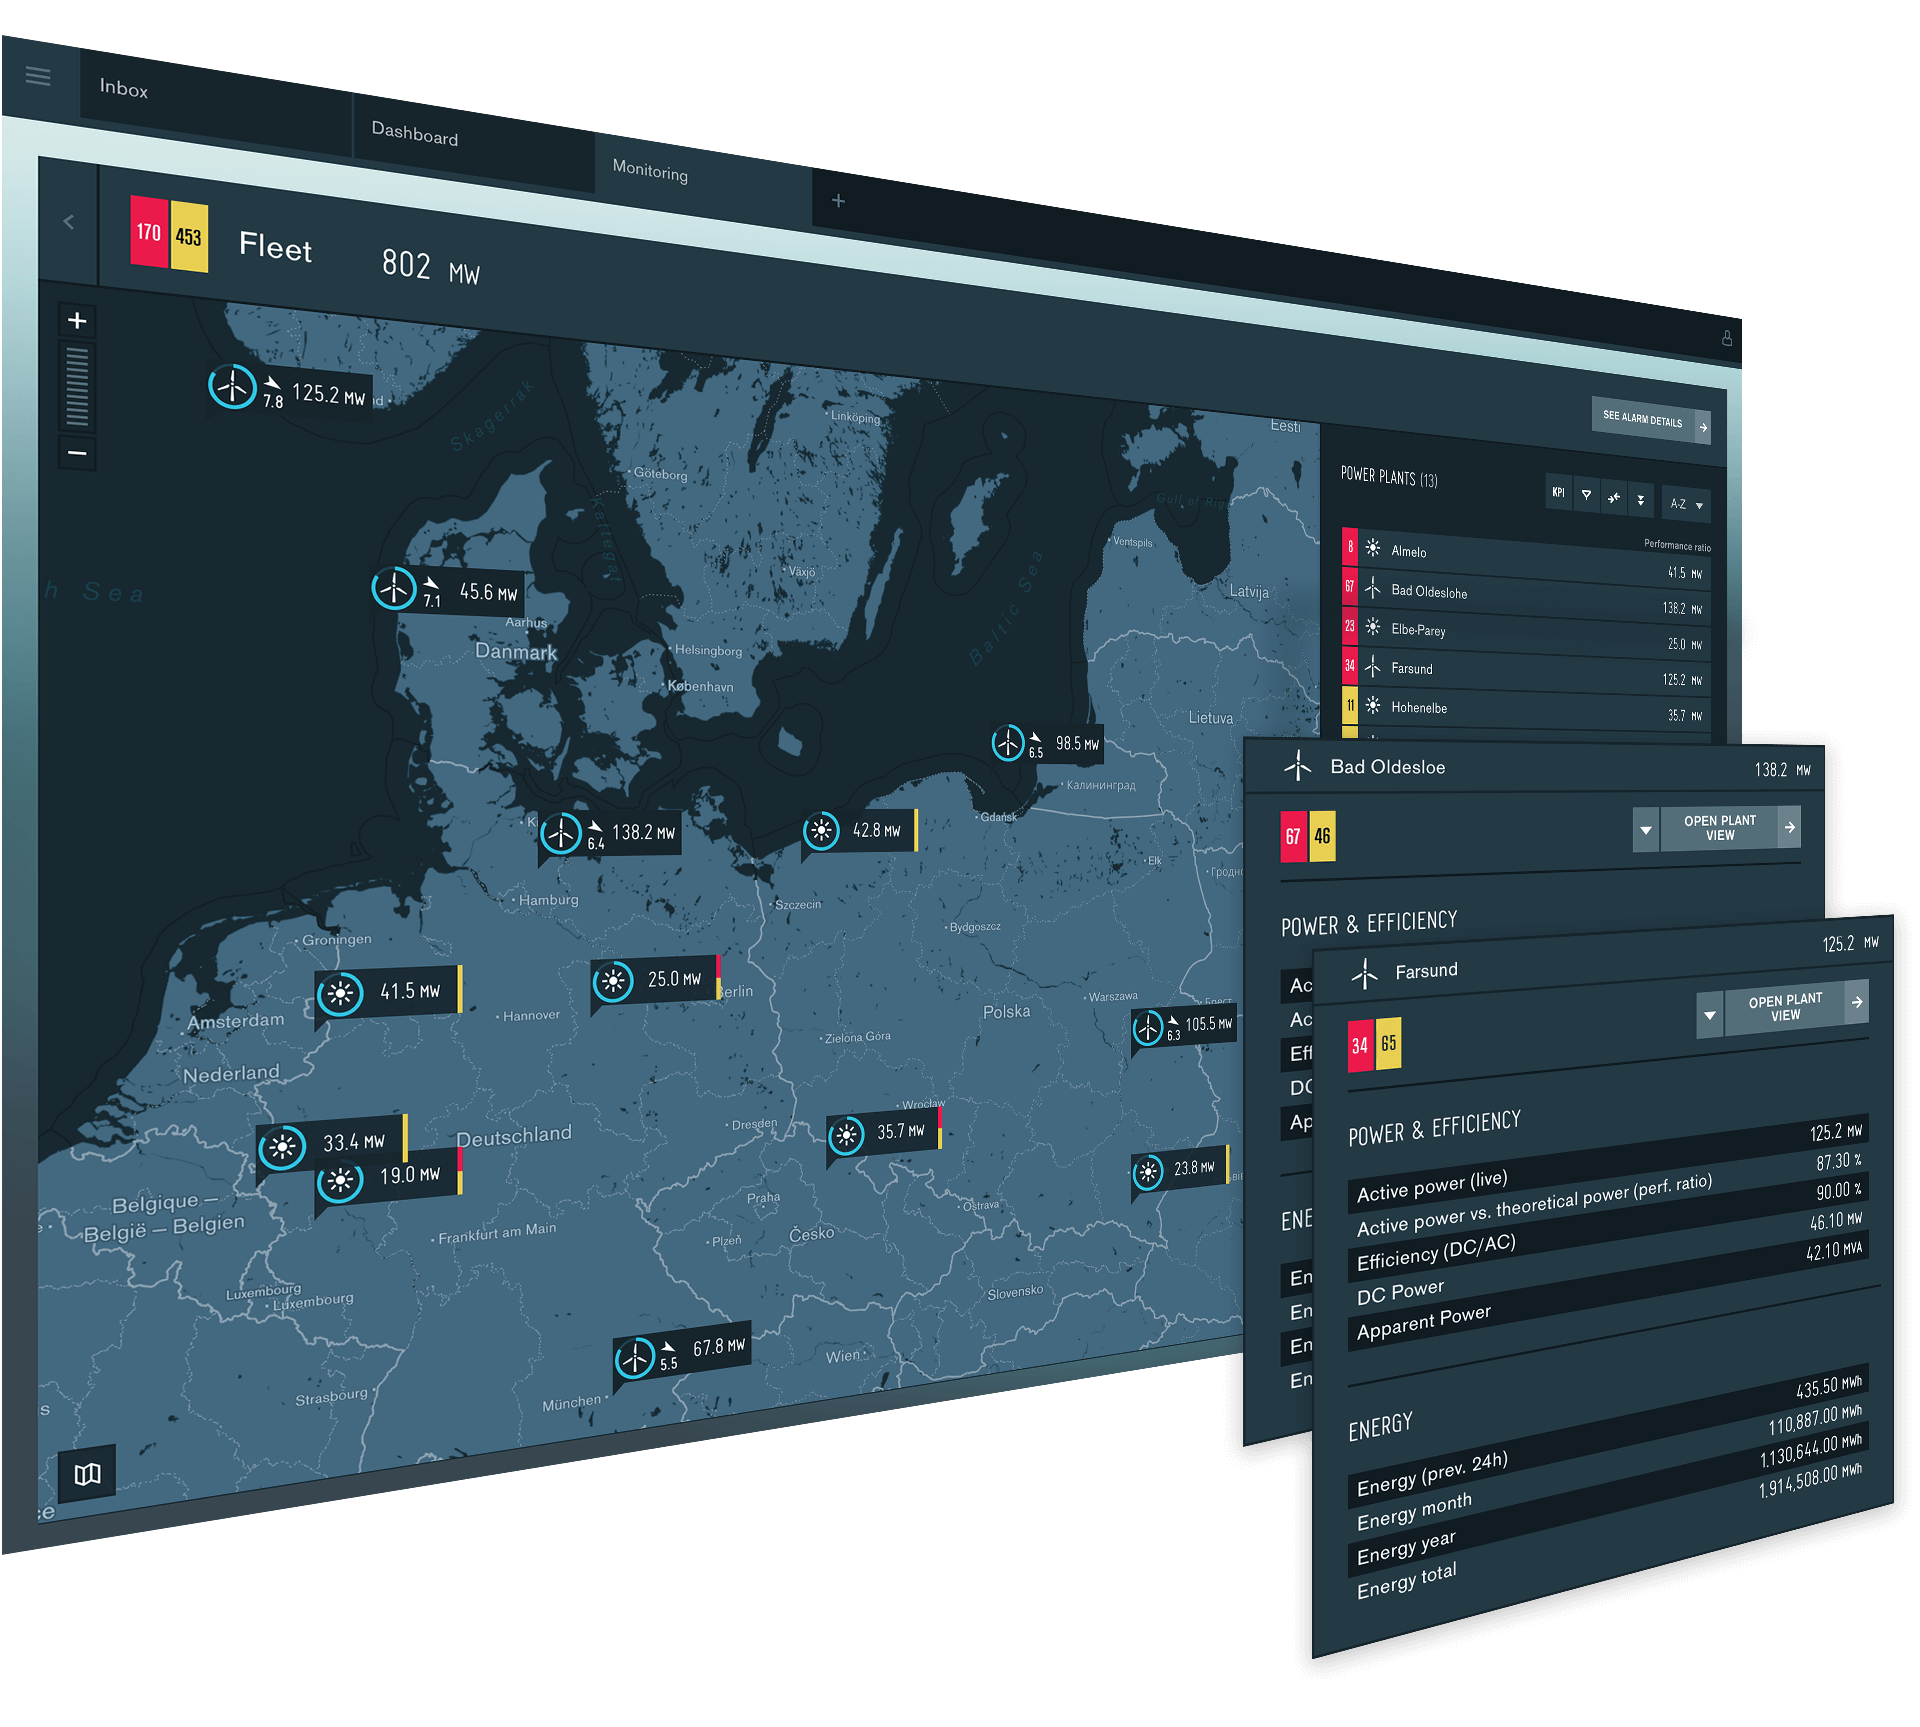 [Translate to Deutsch:] Fleet Monitoring